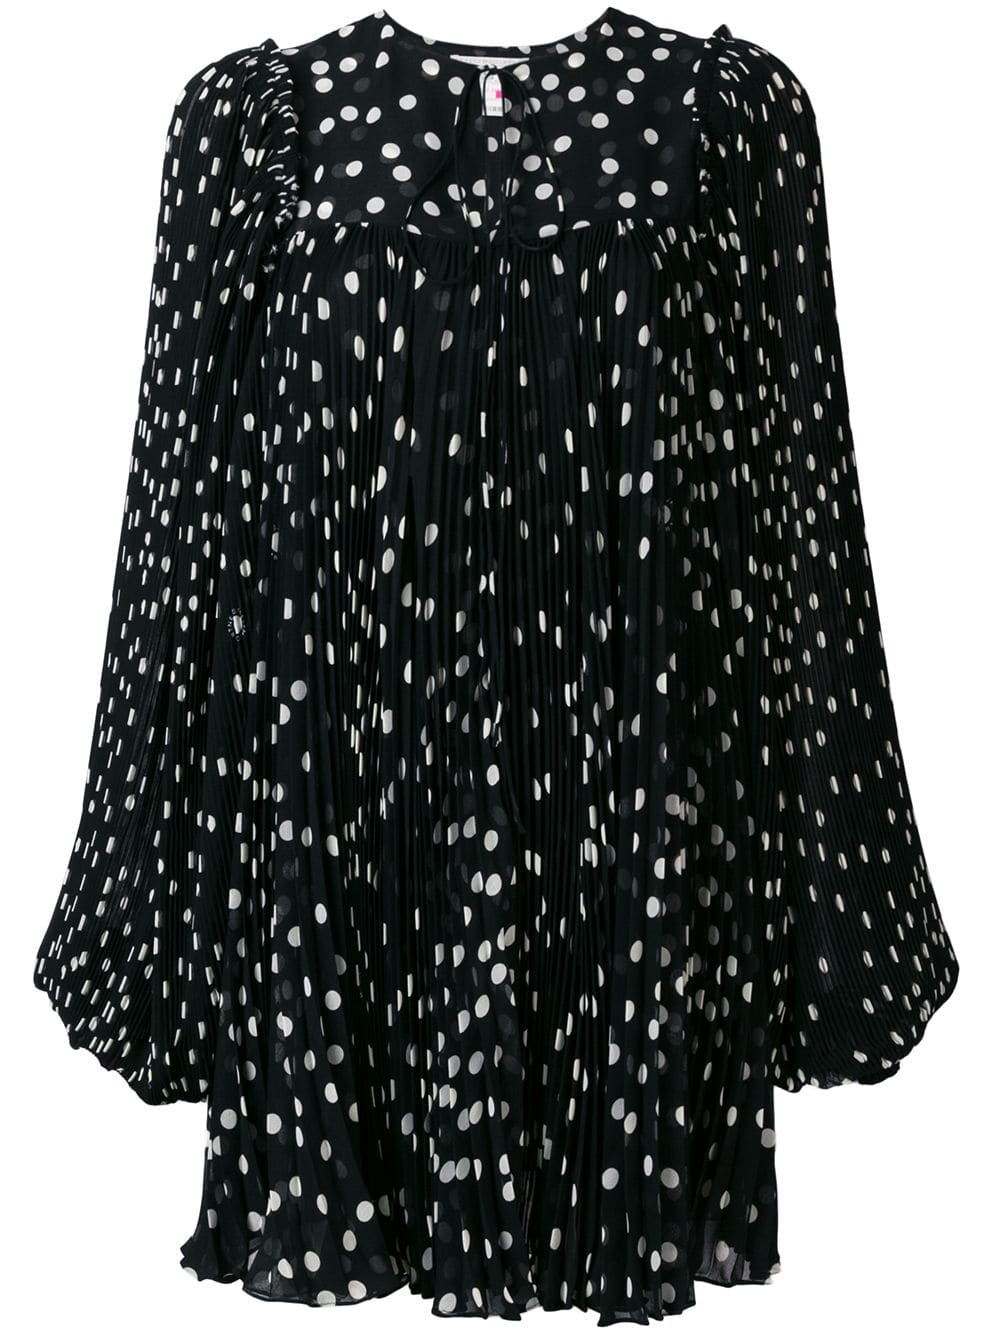 Stella McCartney Polkadots Print Dress